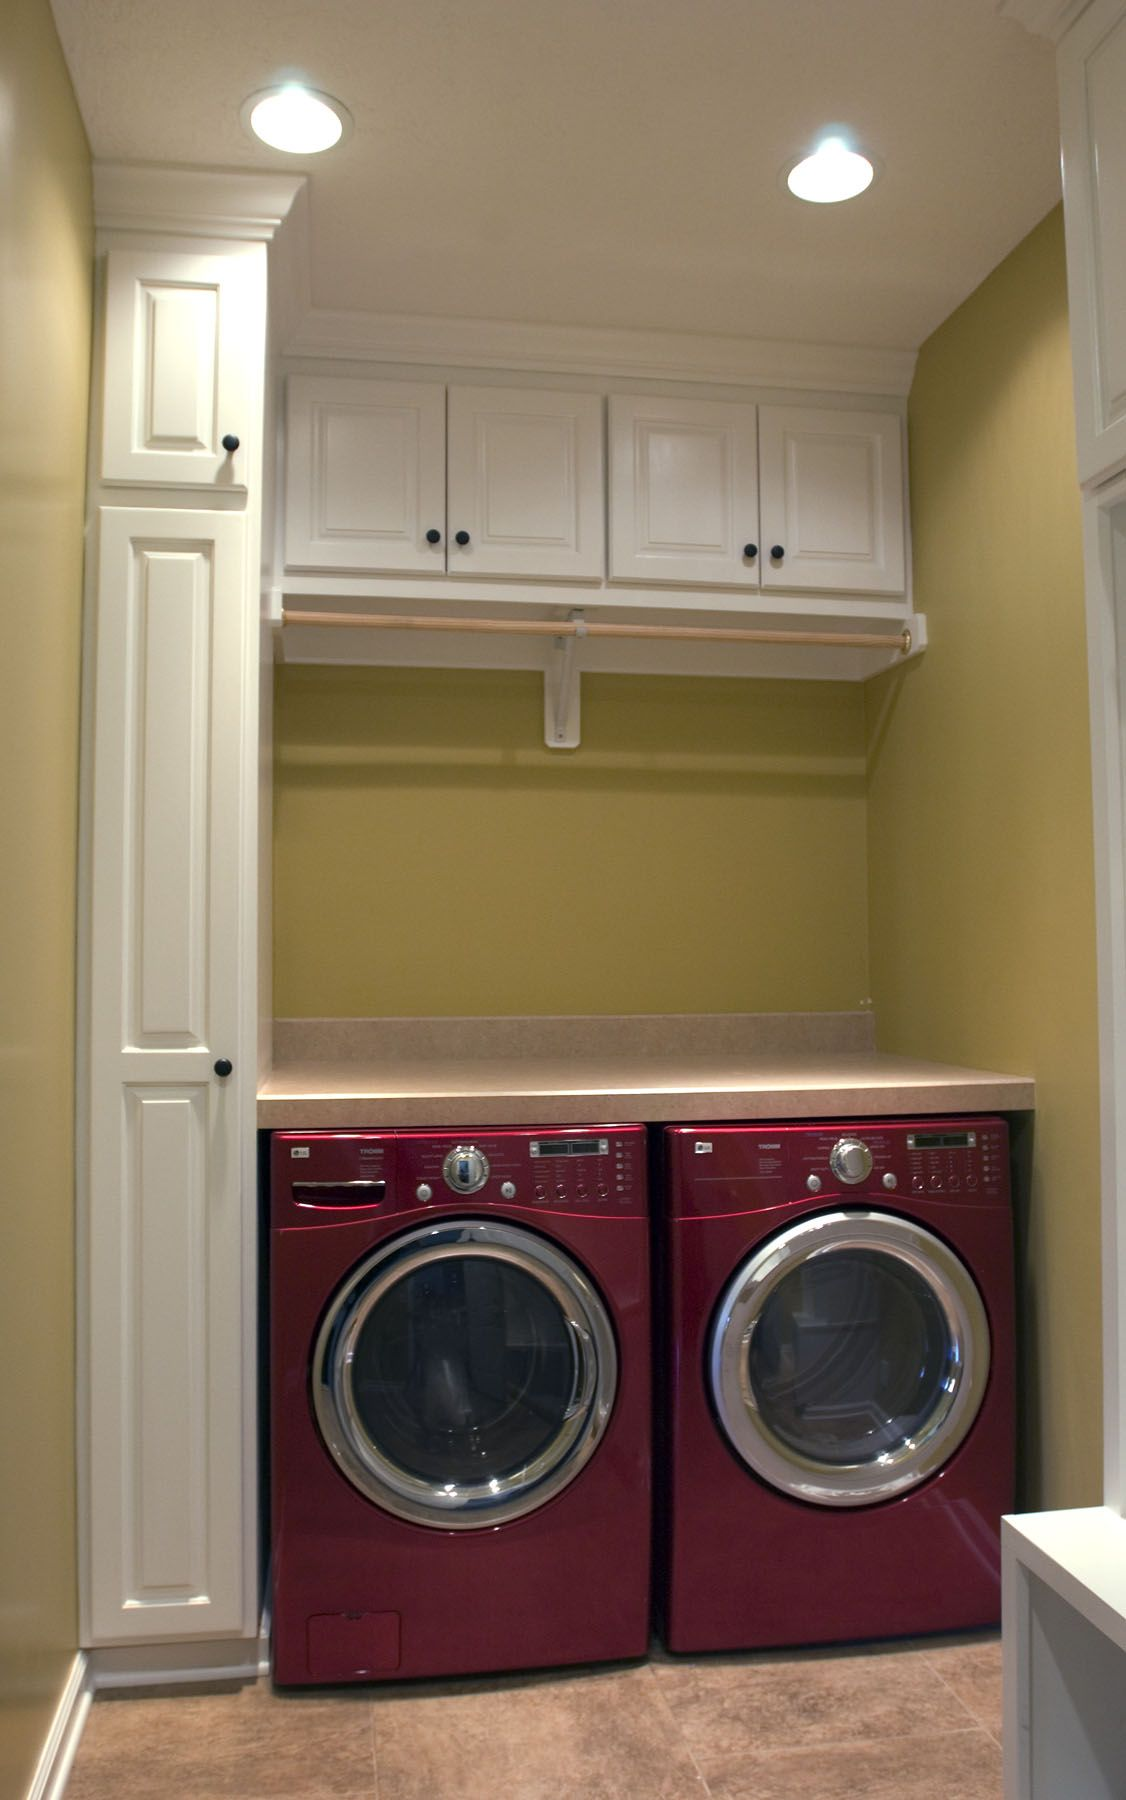 Amazing Small Laundry Room Ideas Simple Small Laundry Room Design With Minimalist  Cabinet Set Ideas Part 23